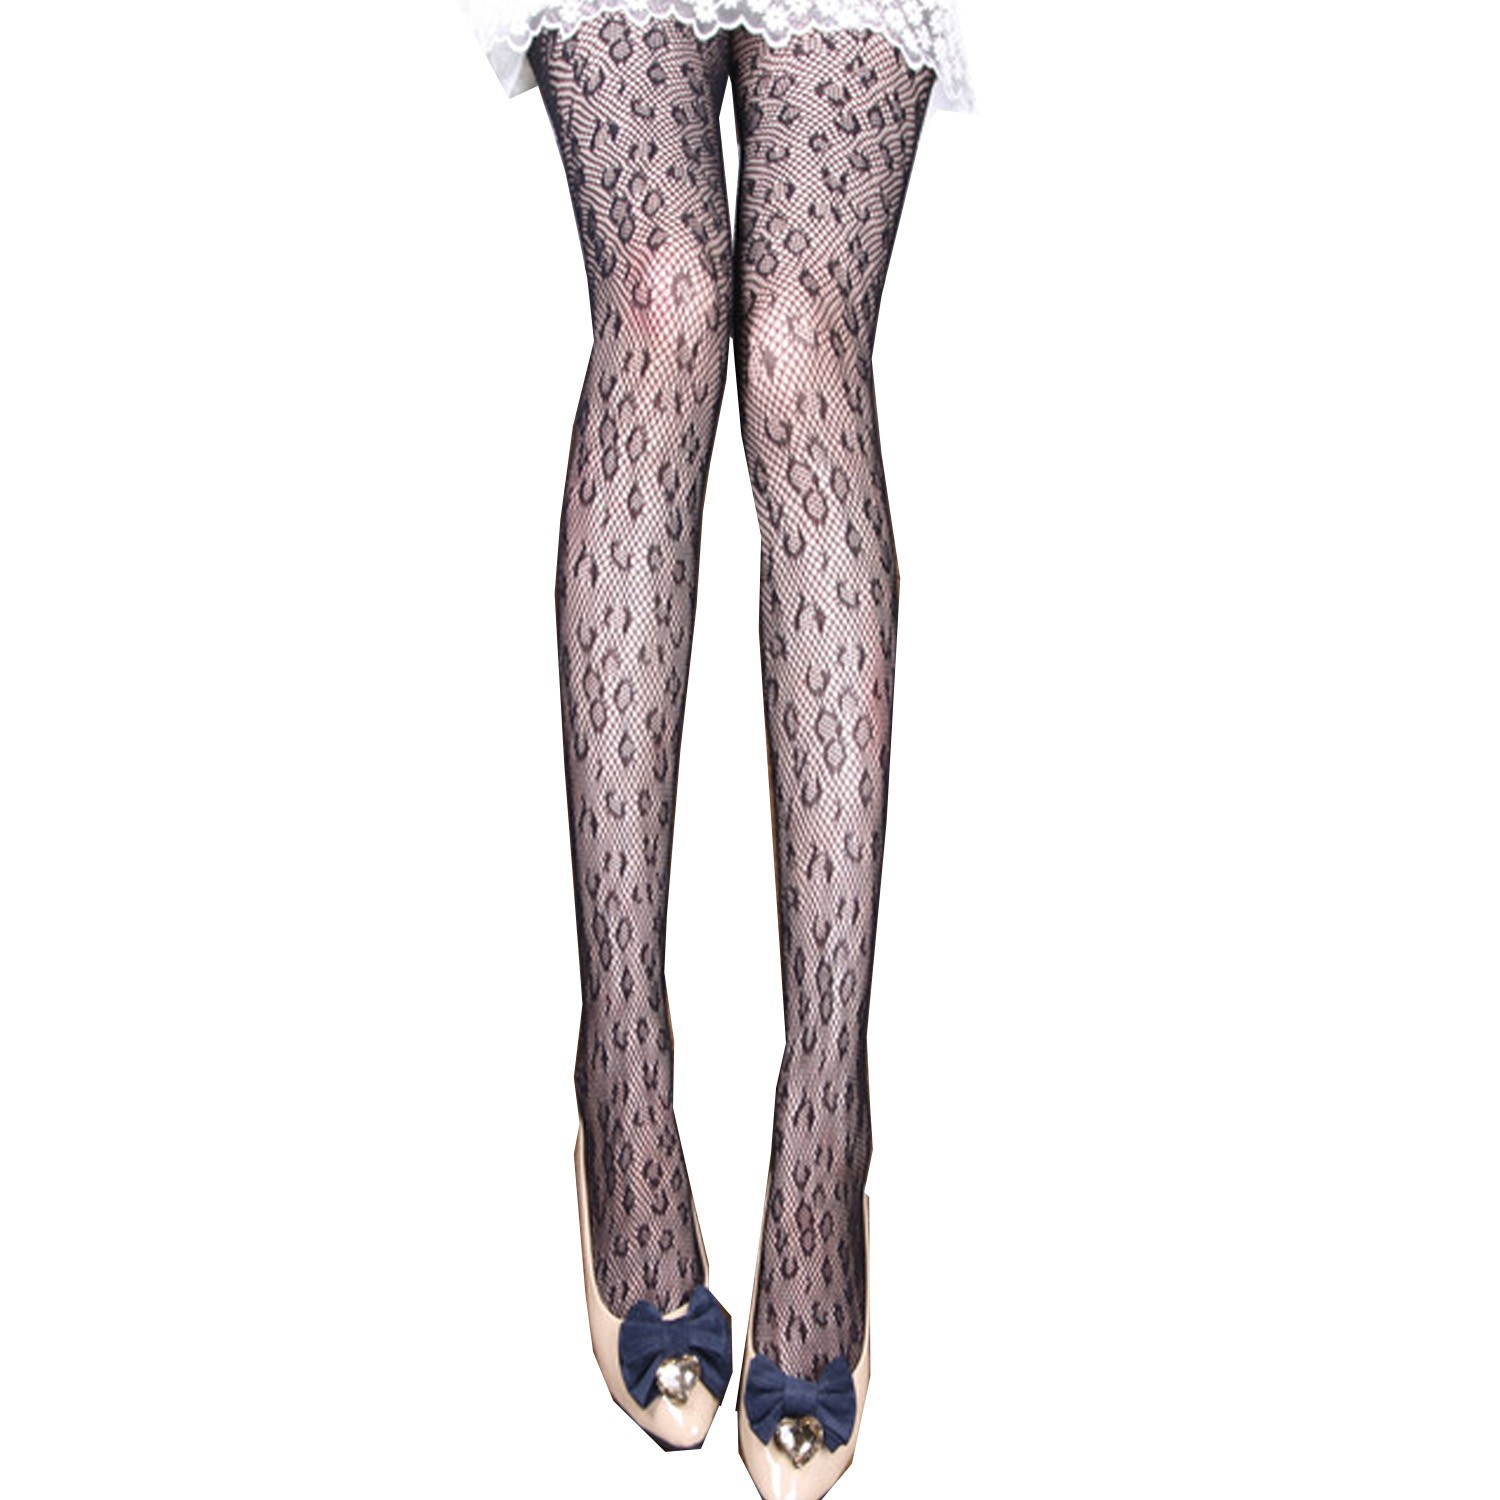 Leopard Skin Print Costume Pantyhose Fishnet Tight - 385#